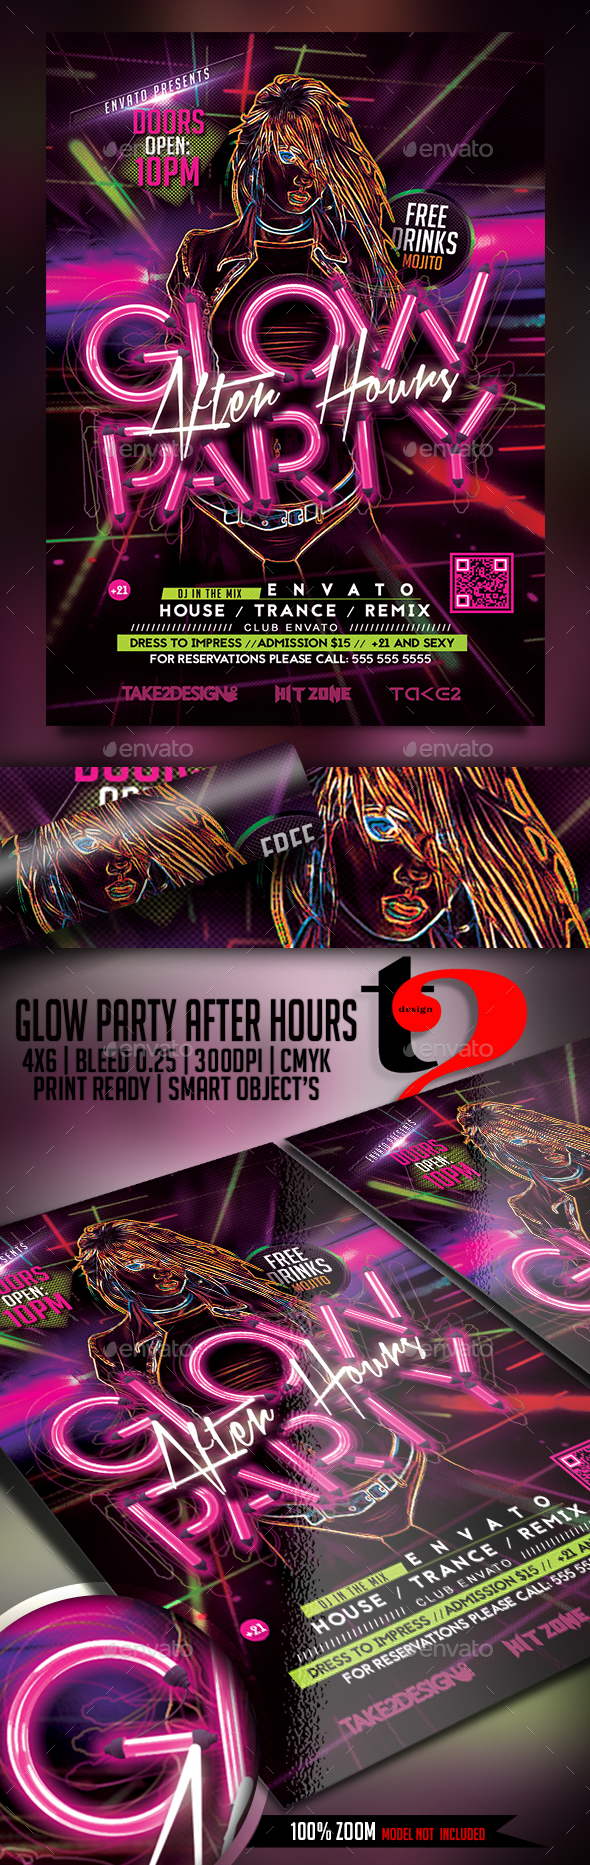 Glow Party - After Hours Flyer Template - Clubs & Parties Events